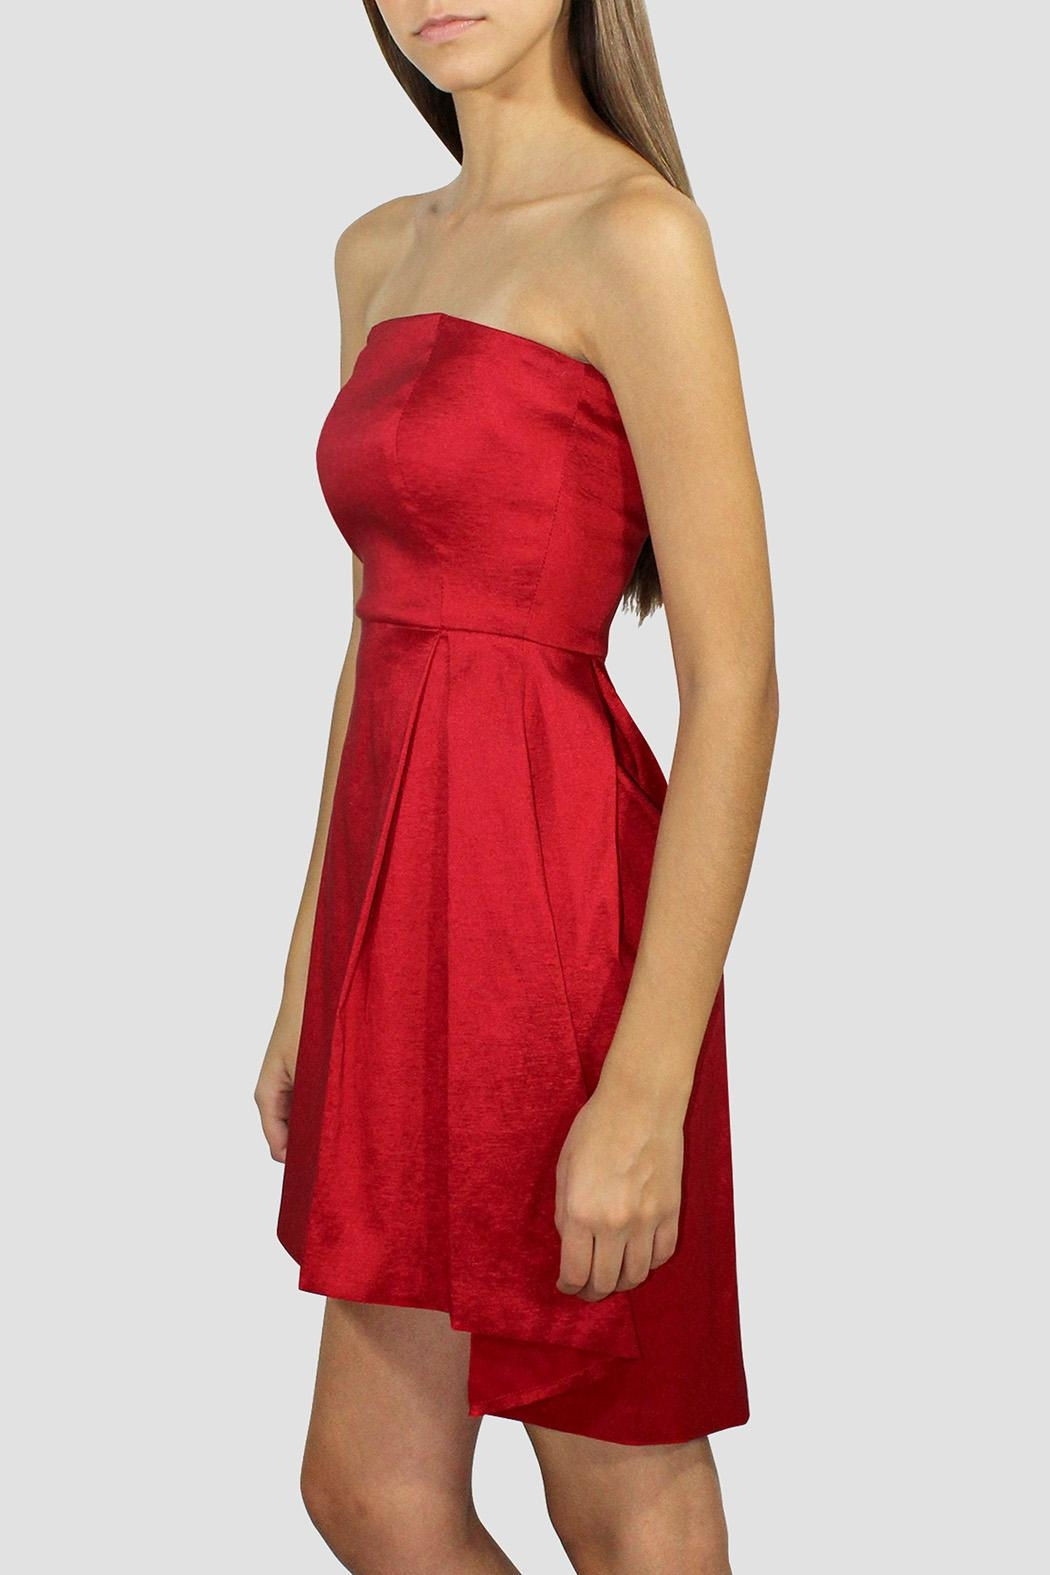 SoZu Red Strapless Dress - Front Full Image